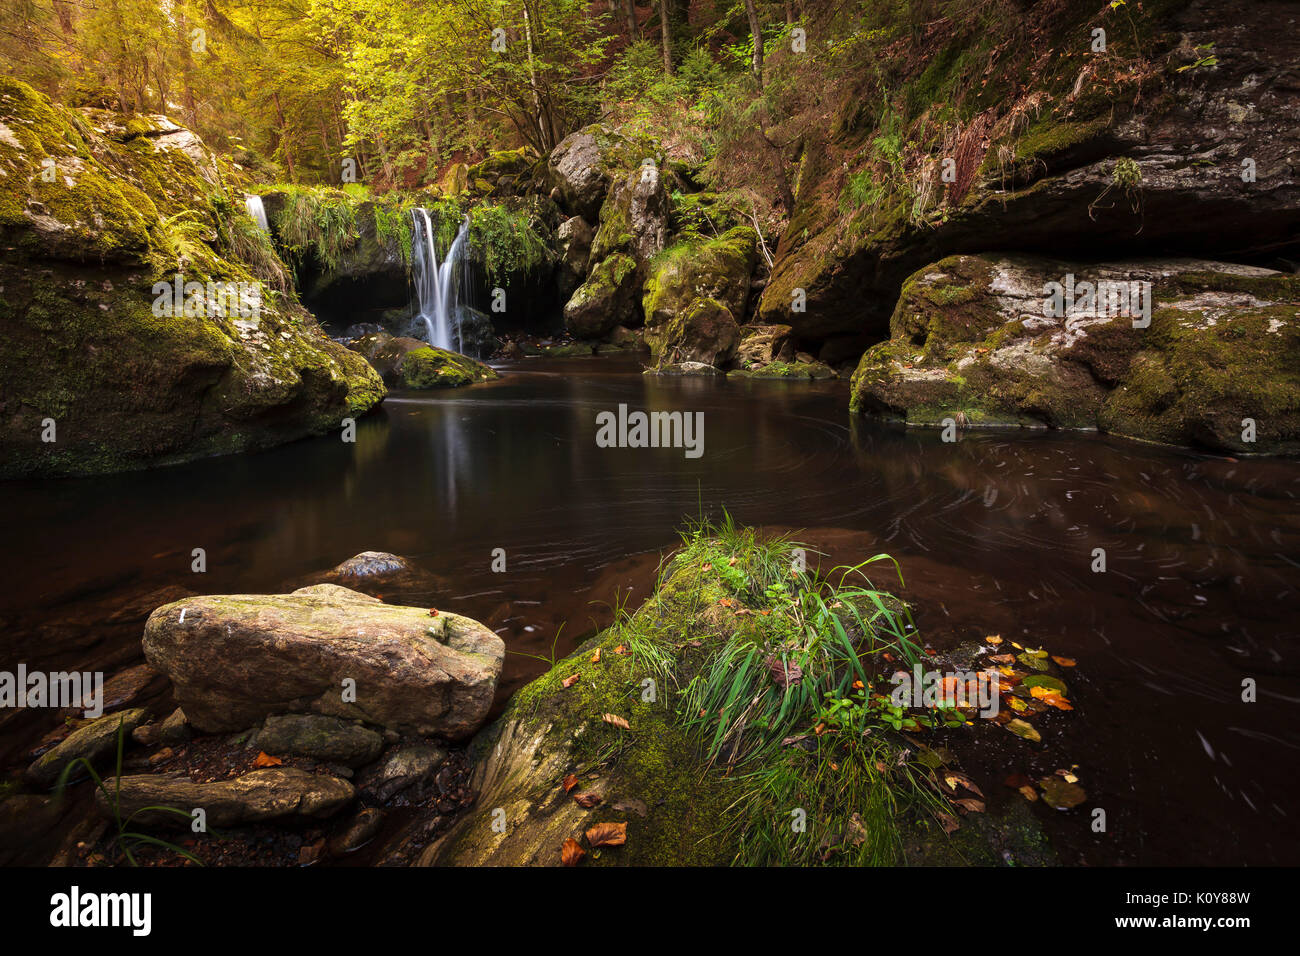 Autumnal mood at the waterfall, Steinklamm, Spiegelau, Bavarian Forest National Park, Bavaria, Germany - Stock Image